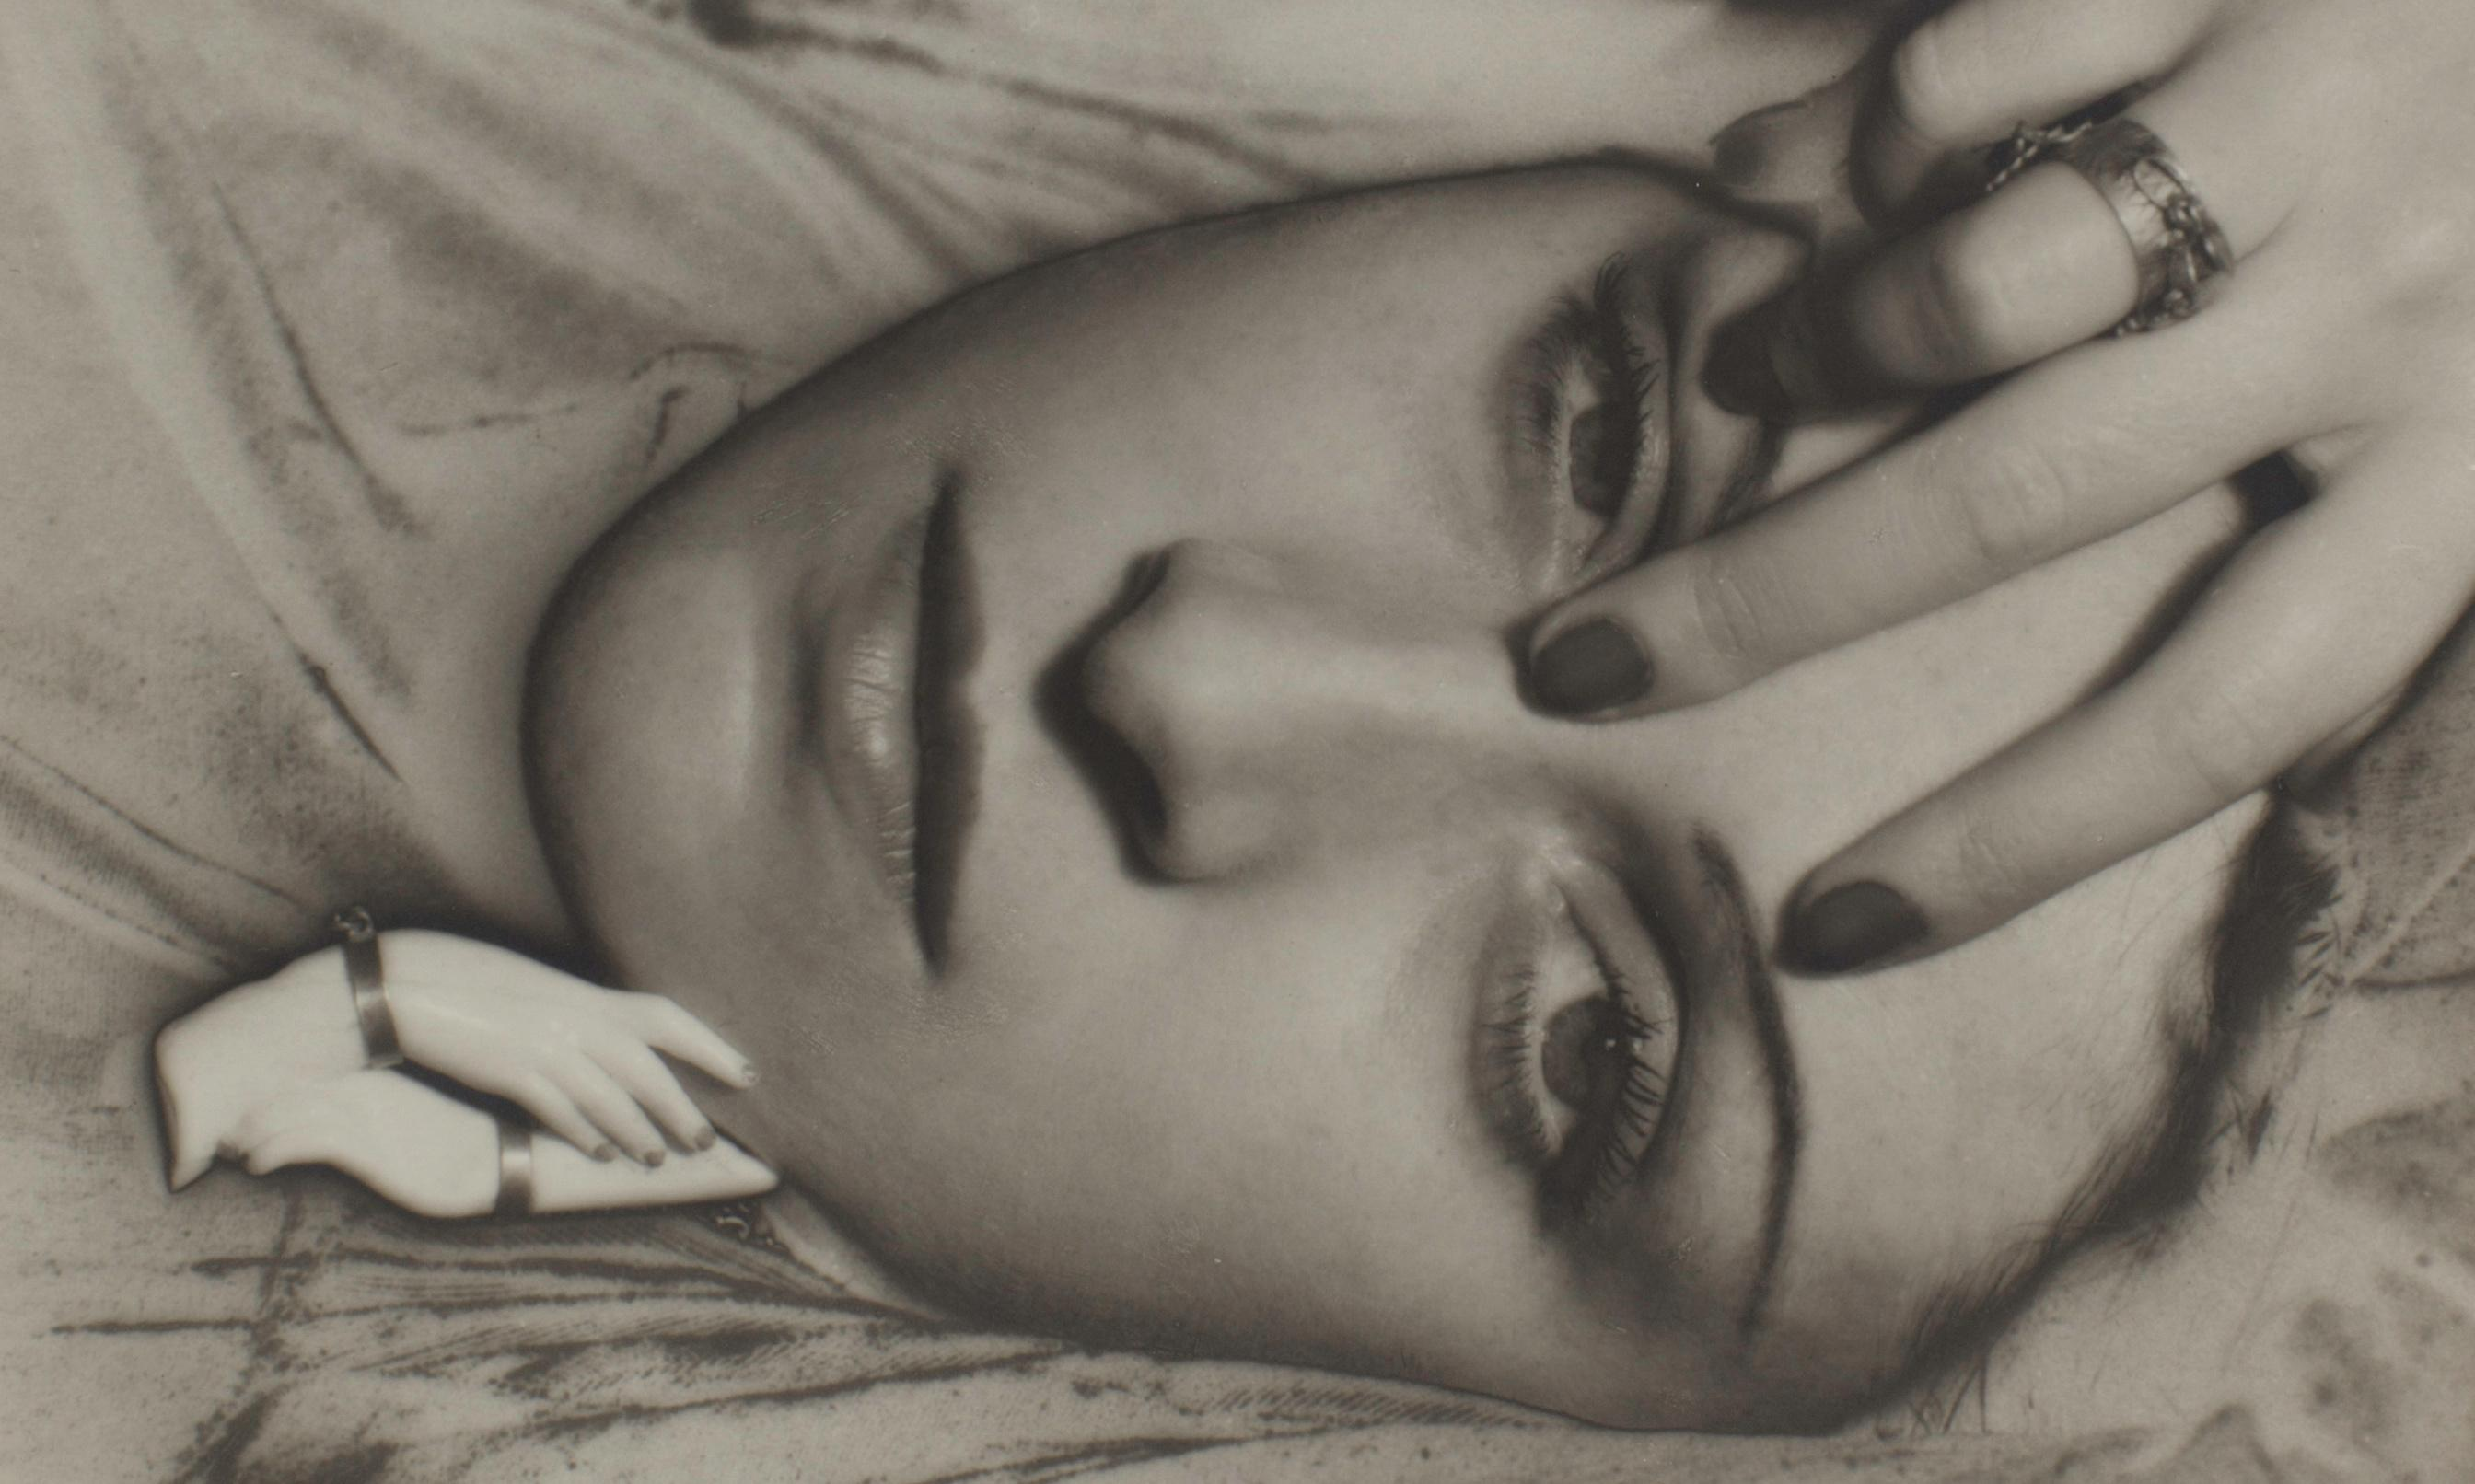 Dora Maar: how Picasso's weeping woman had the last laugh